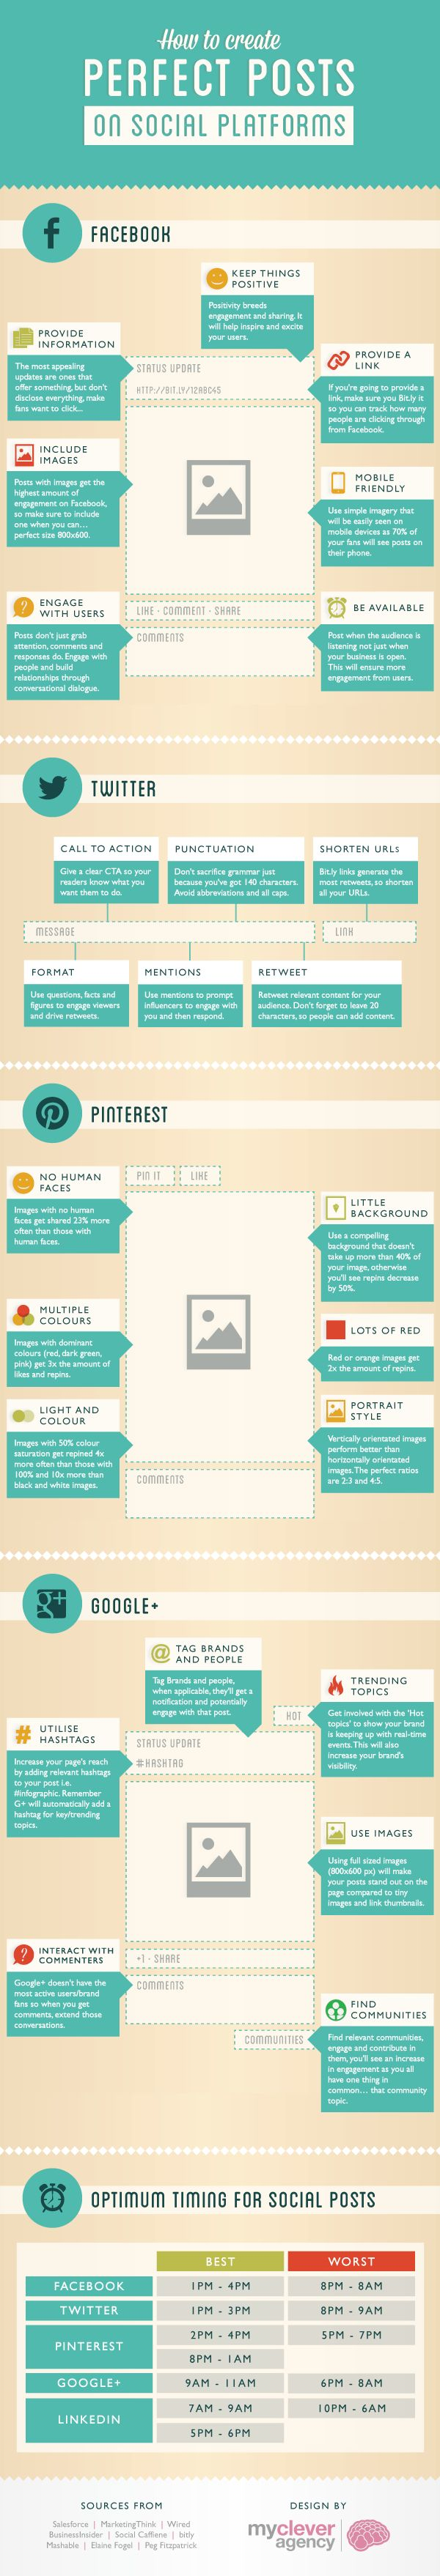 Social Media info - what to post and when to post to Facebook, Twitter, Pinterest, and Google+